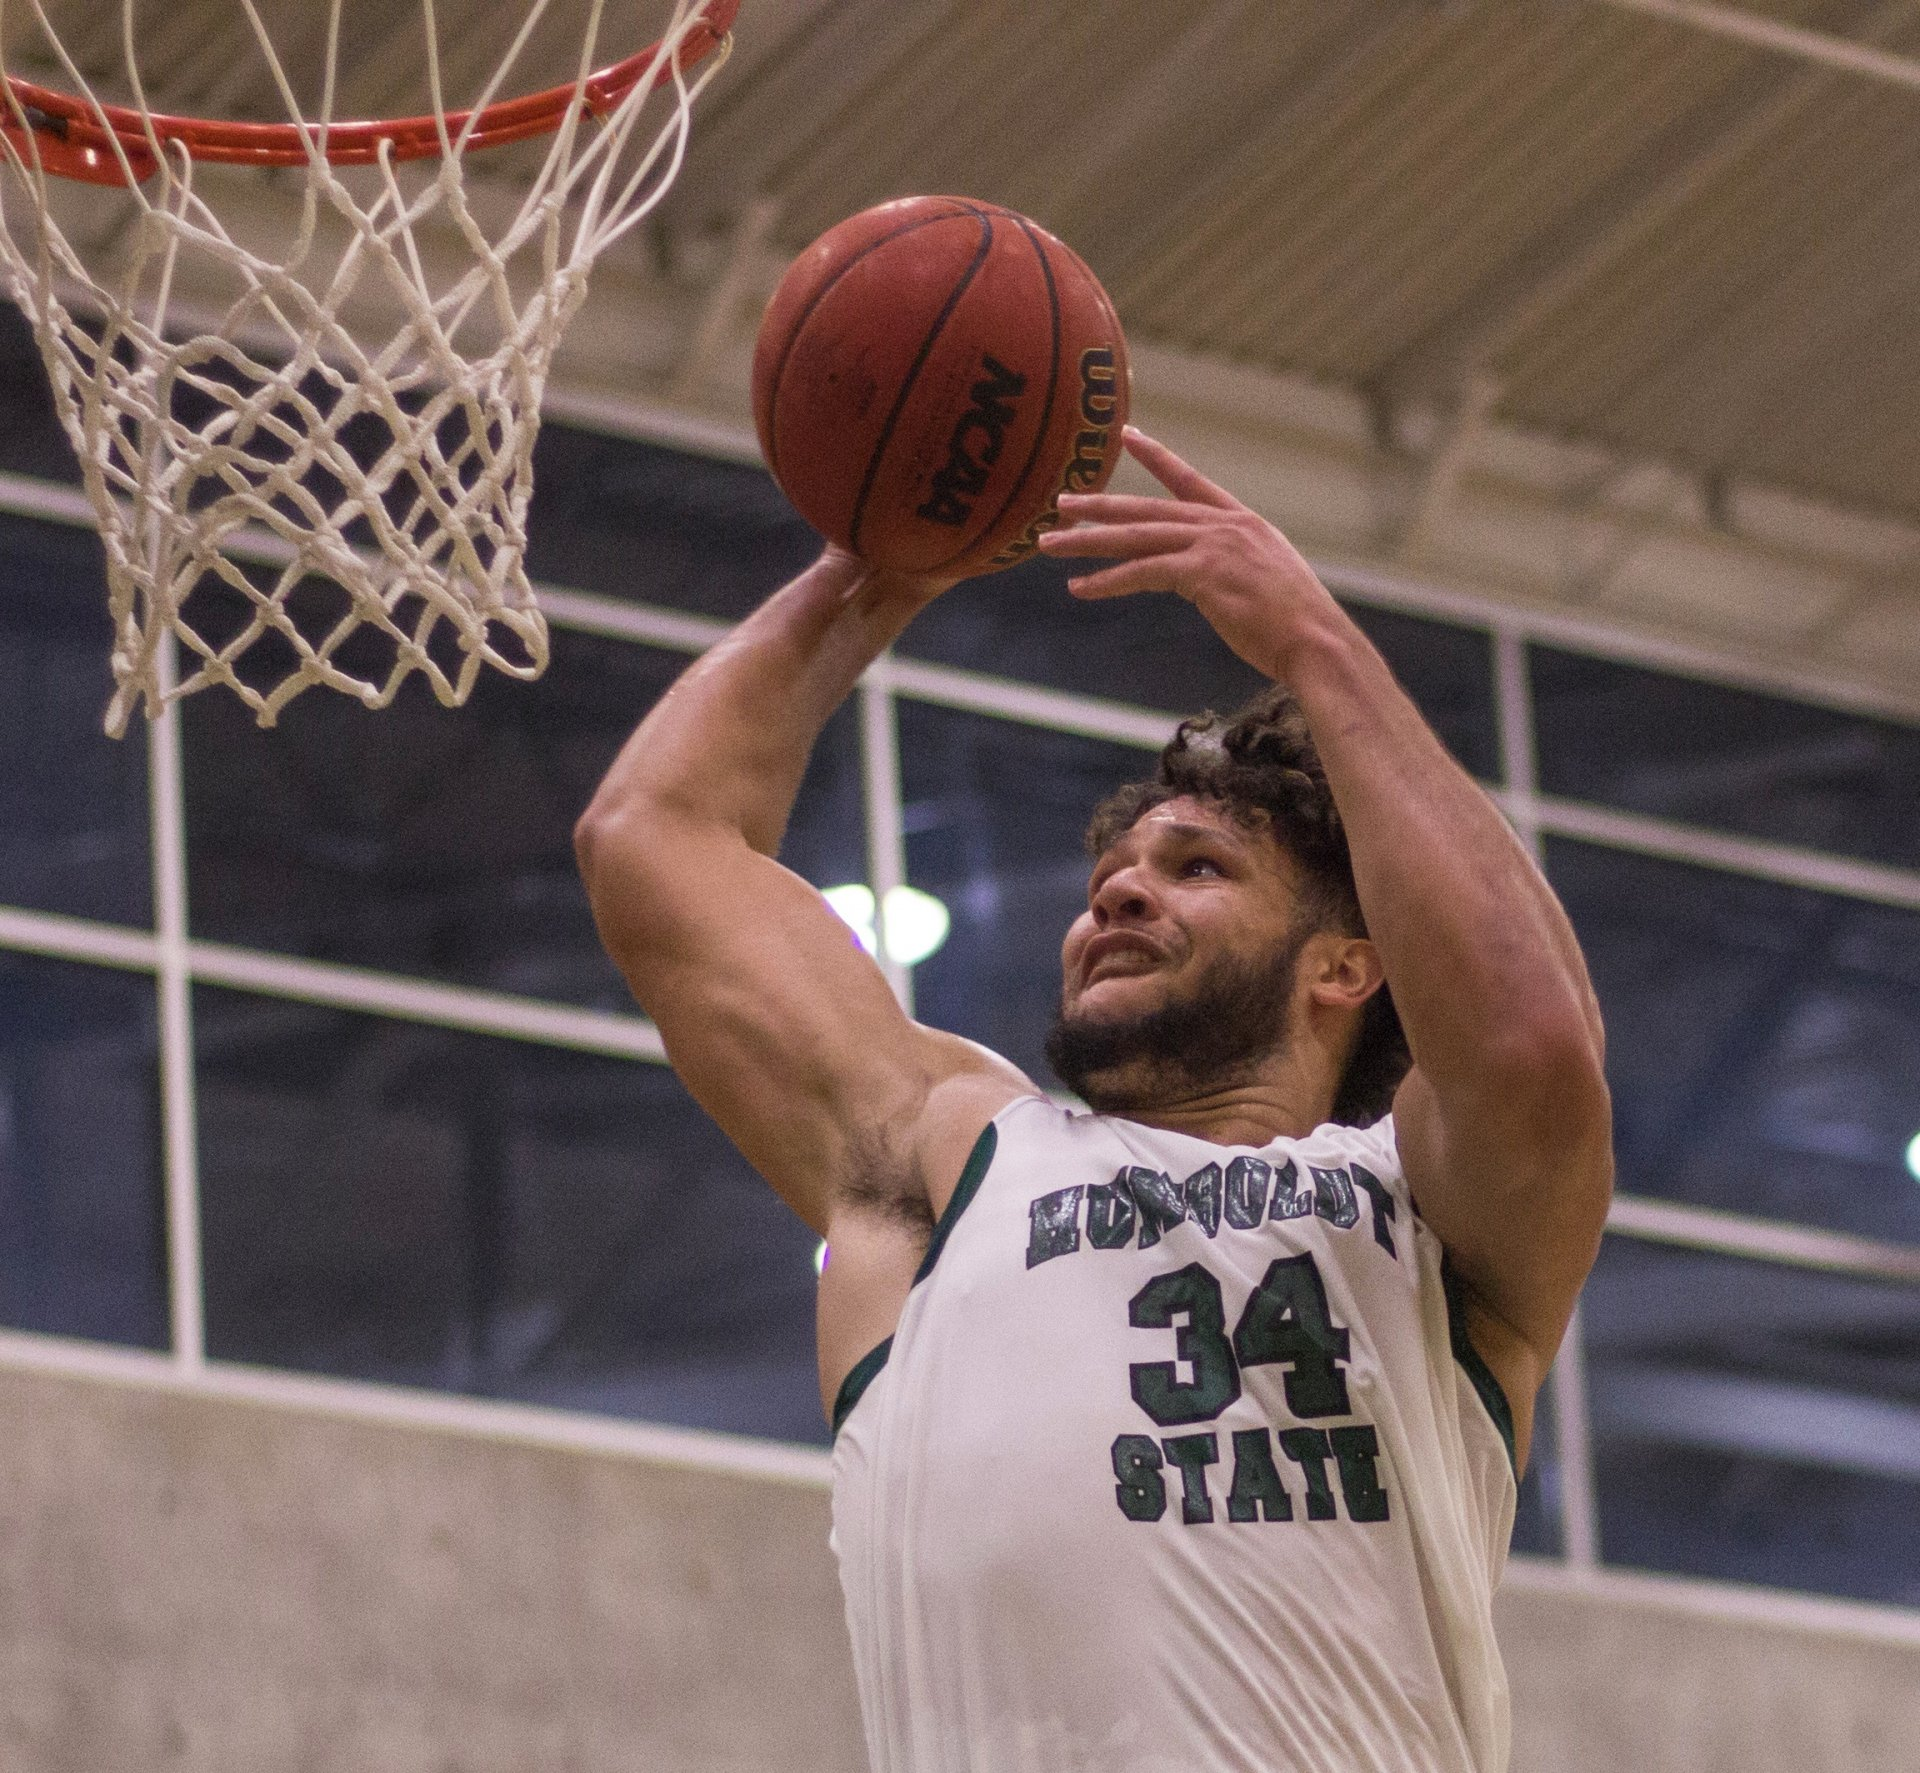 Davasyia Hagger takes a pass from a Humboldt State University teammate and elevates for a dunk in the 110-66 win over Pacific Union College on Nov. 13 in the Lumberjack Arena. | Diego Linares